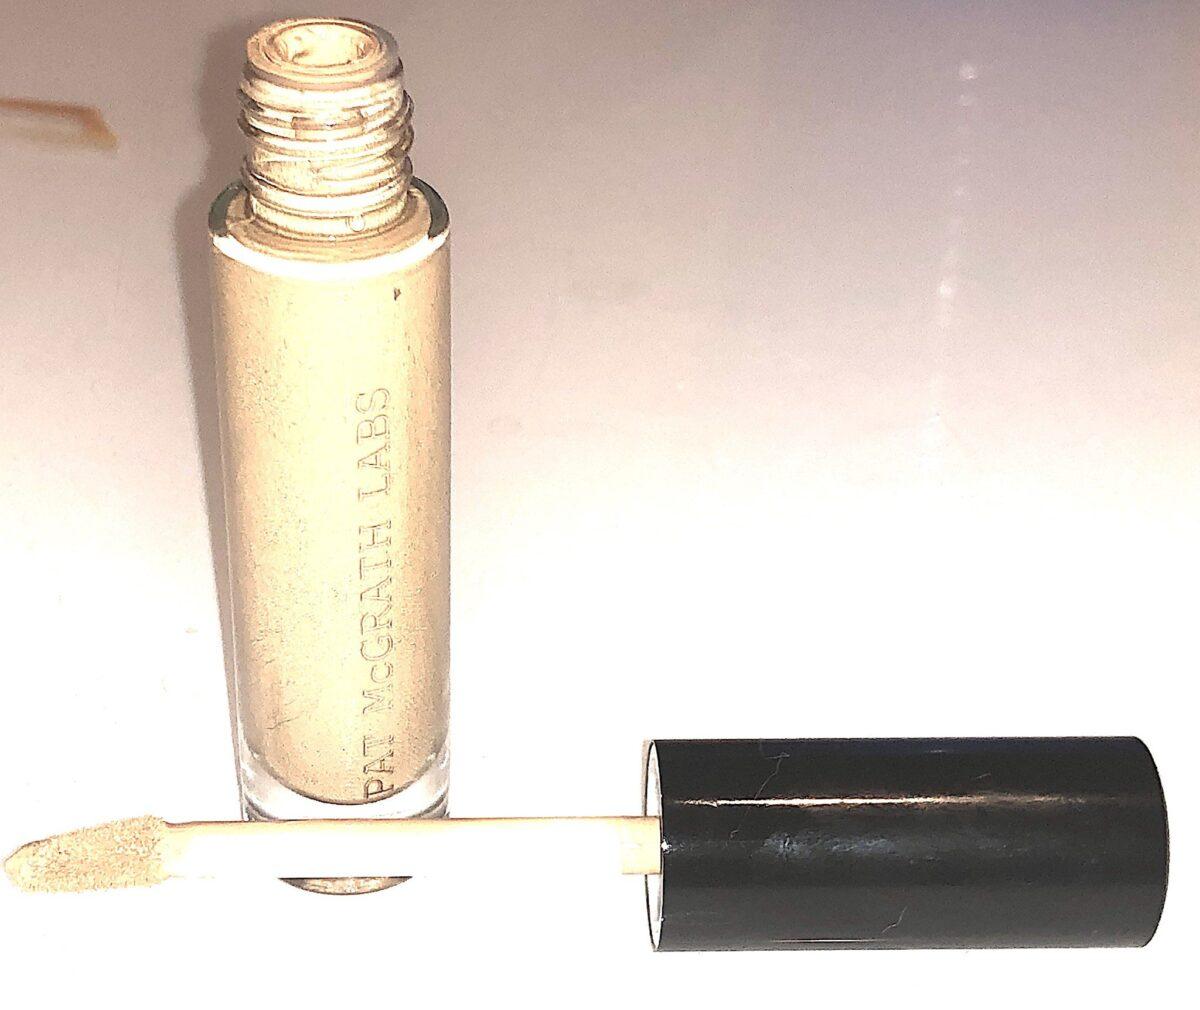 THE SUBLIME PERFECTION CONCEALER COLLECTION CONCEALER G;ASS TUBE AND DDE-FOTTED FLOCKED APPLICATOR